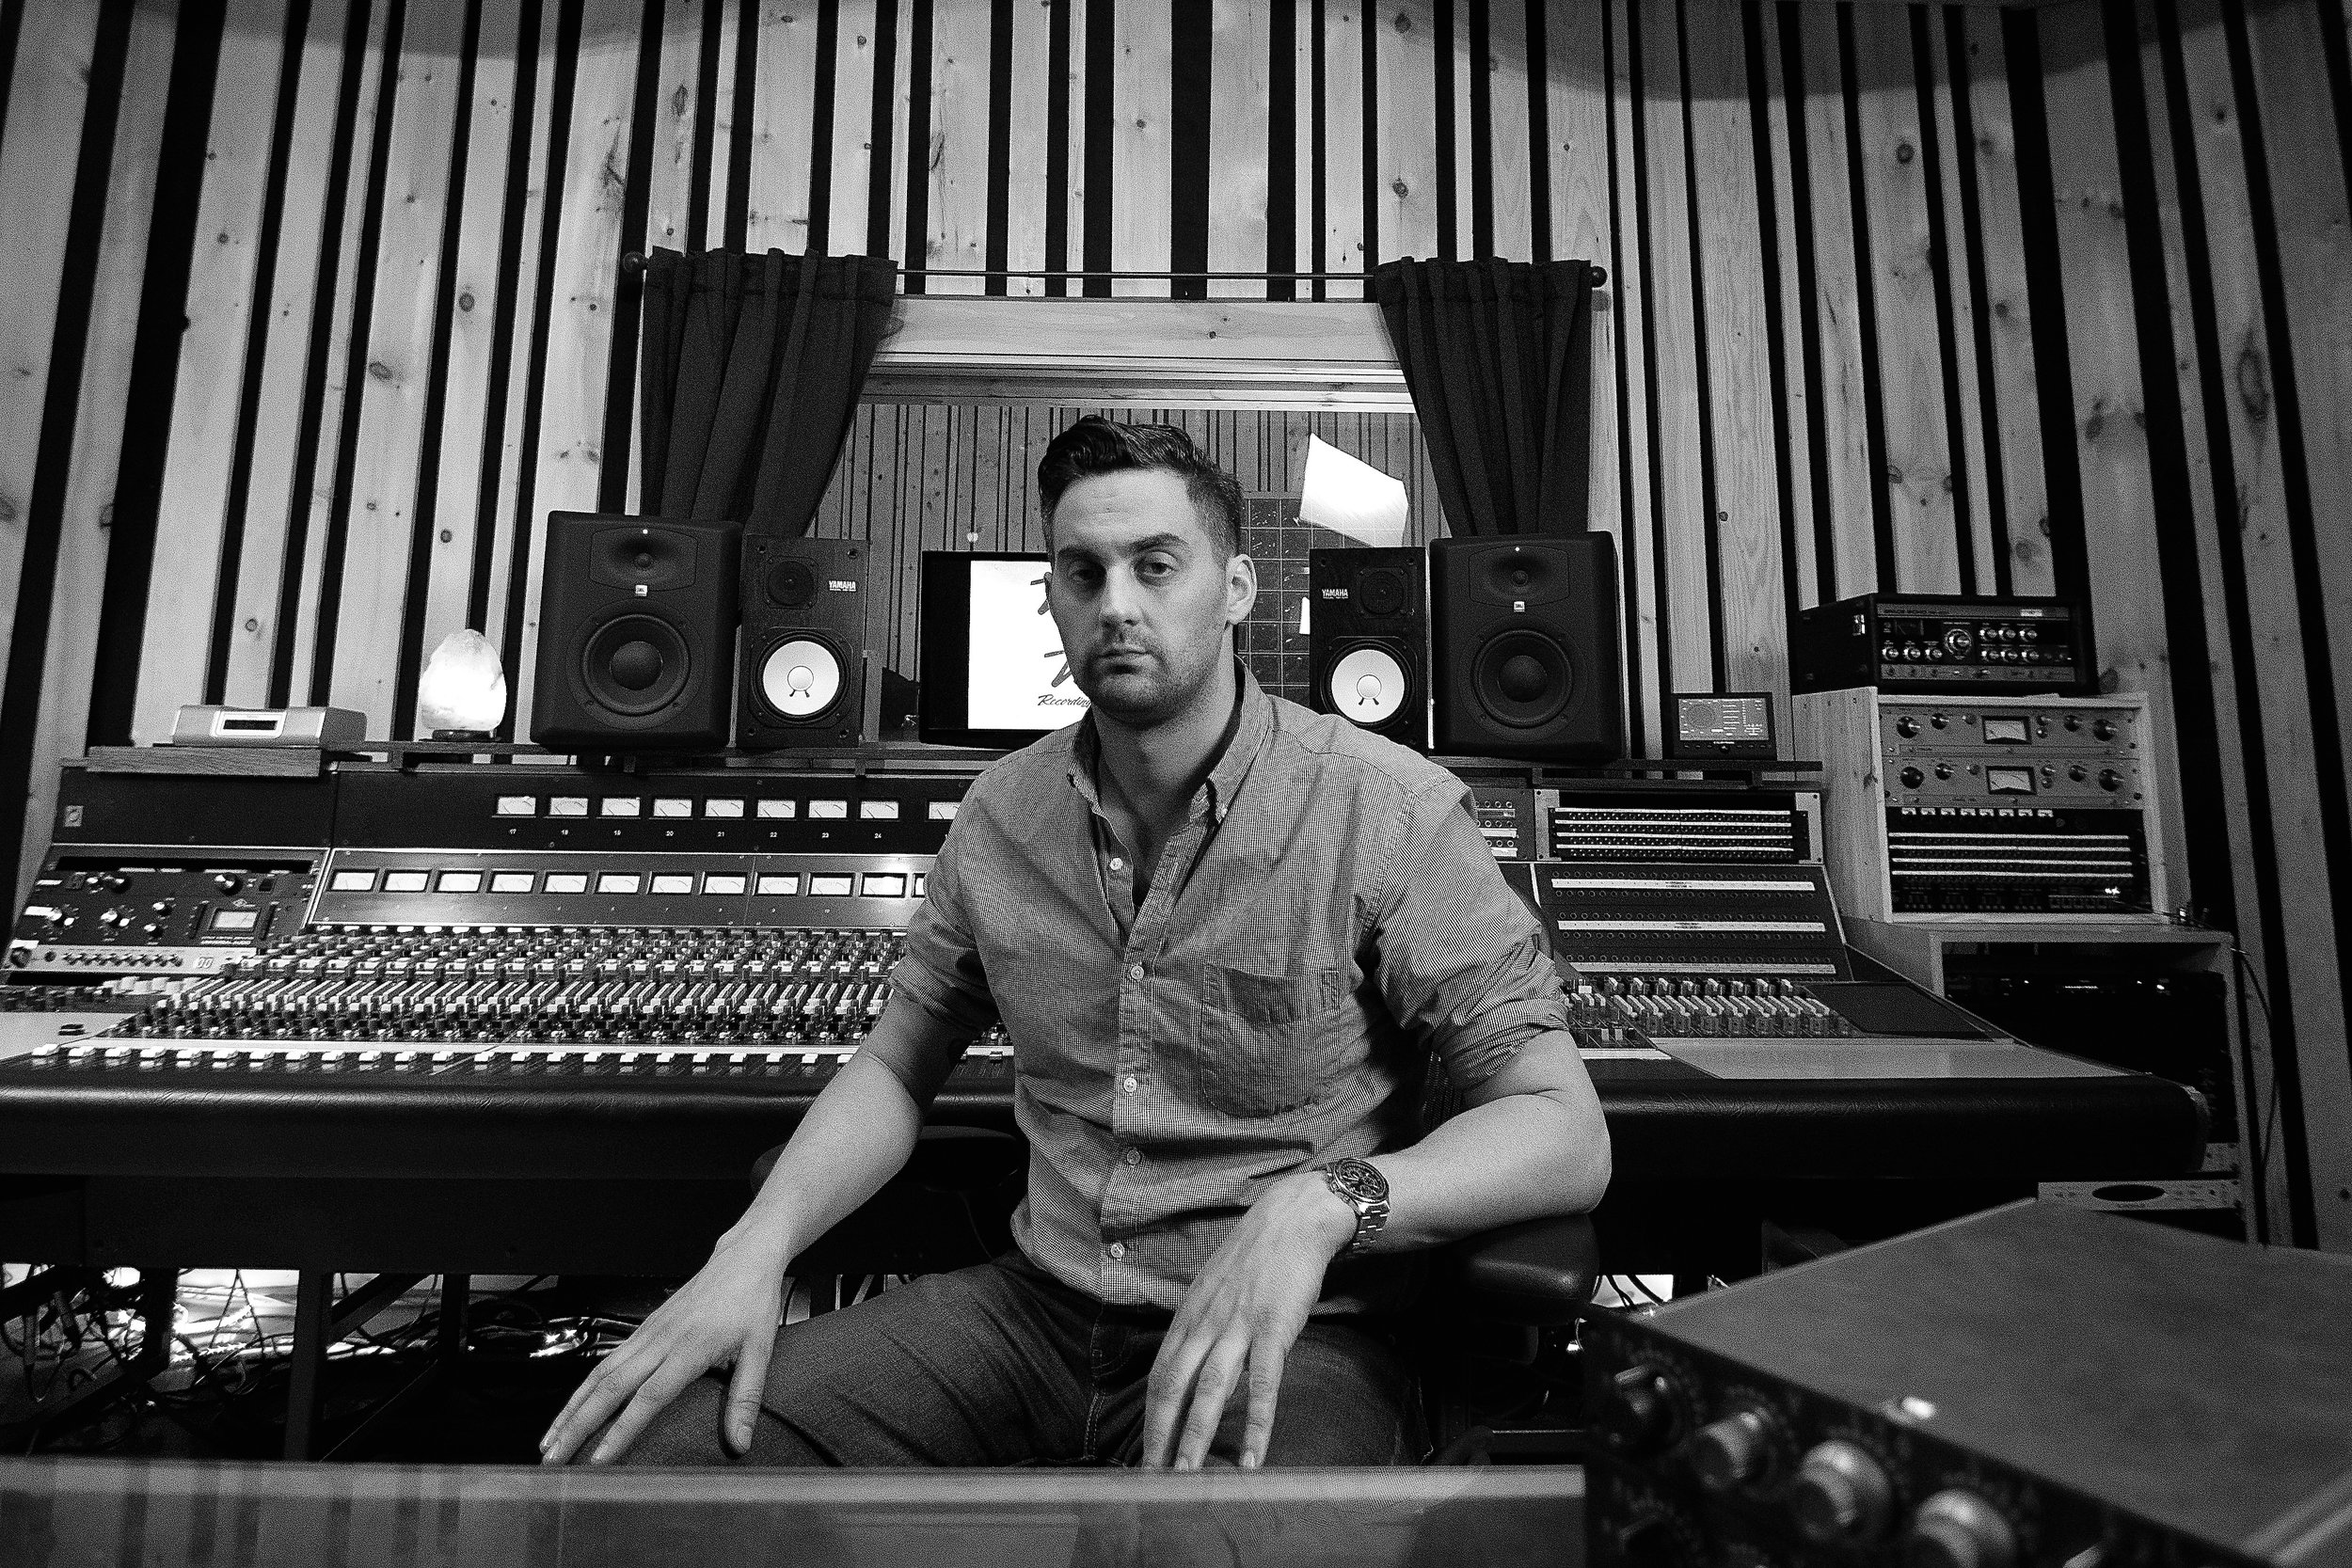 Anthony-Rocky-Gallo-Virtue-And-Vice-Studios-Brooklyn-NY-Neve-Console1.jpg